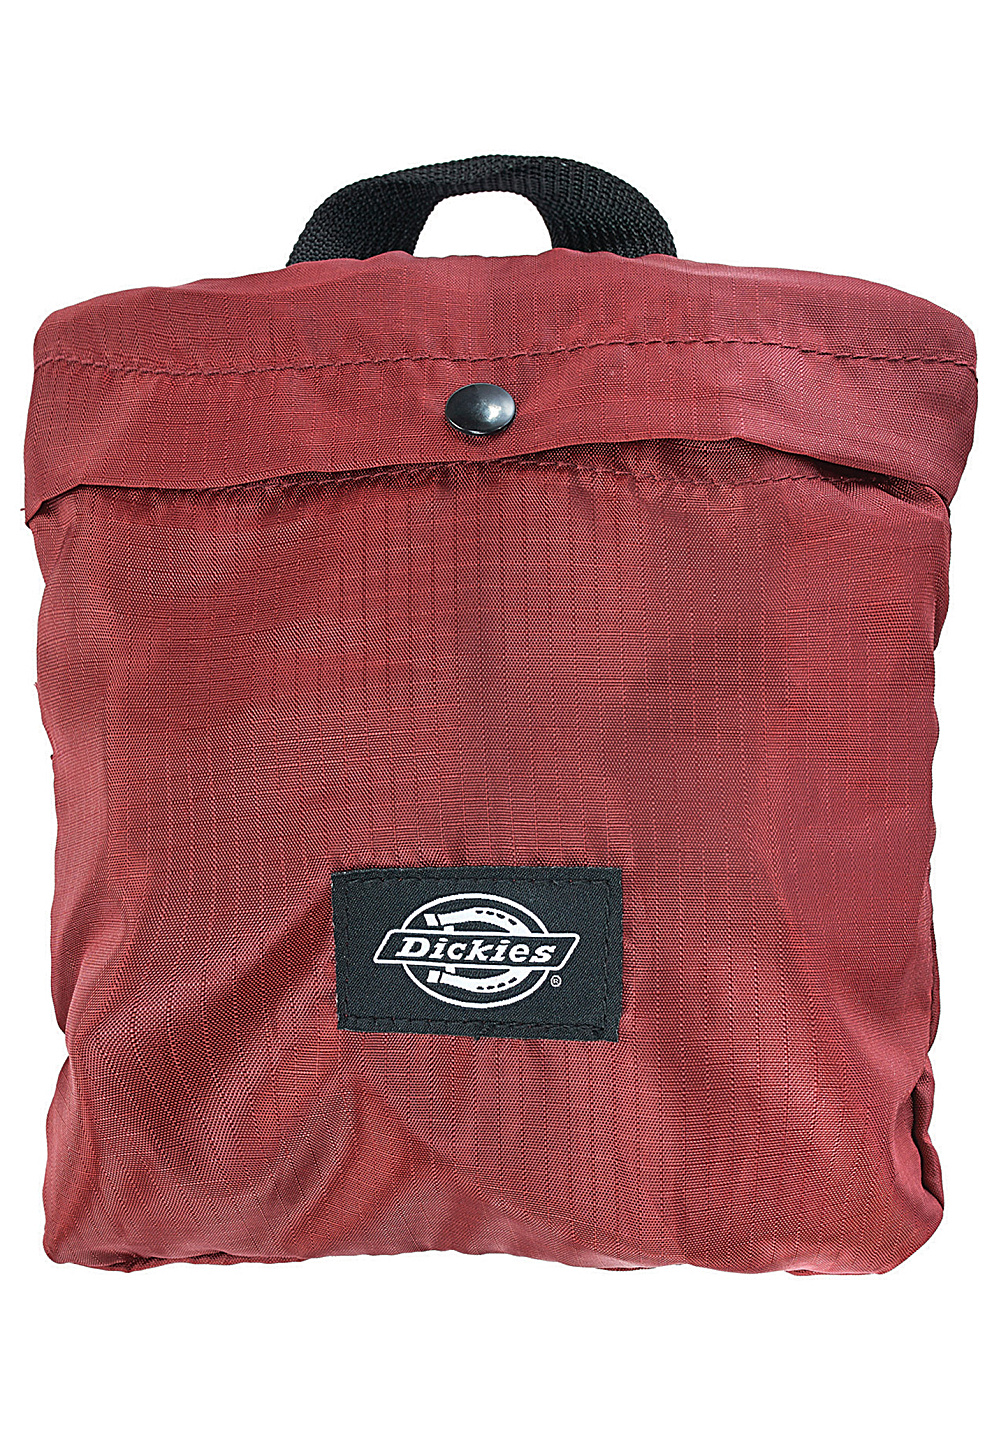 d95db79193 ... Dickies Broadhead Creek - Gym Bag for Men - Red. Back to Overview. 1   2. Previous